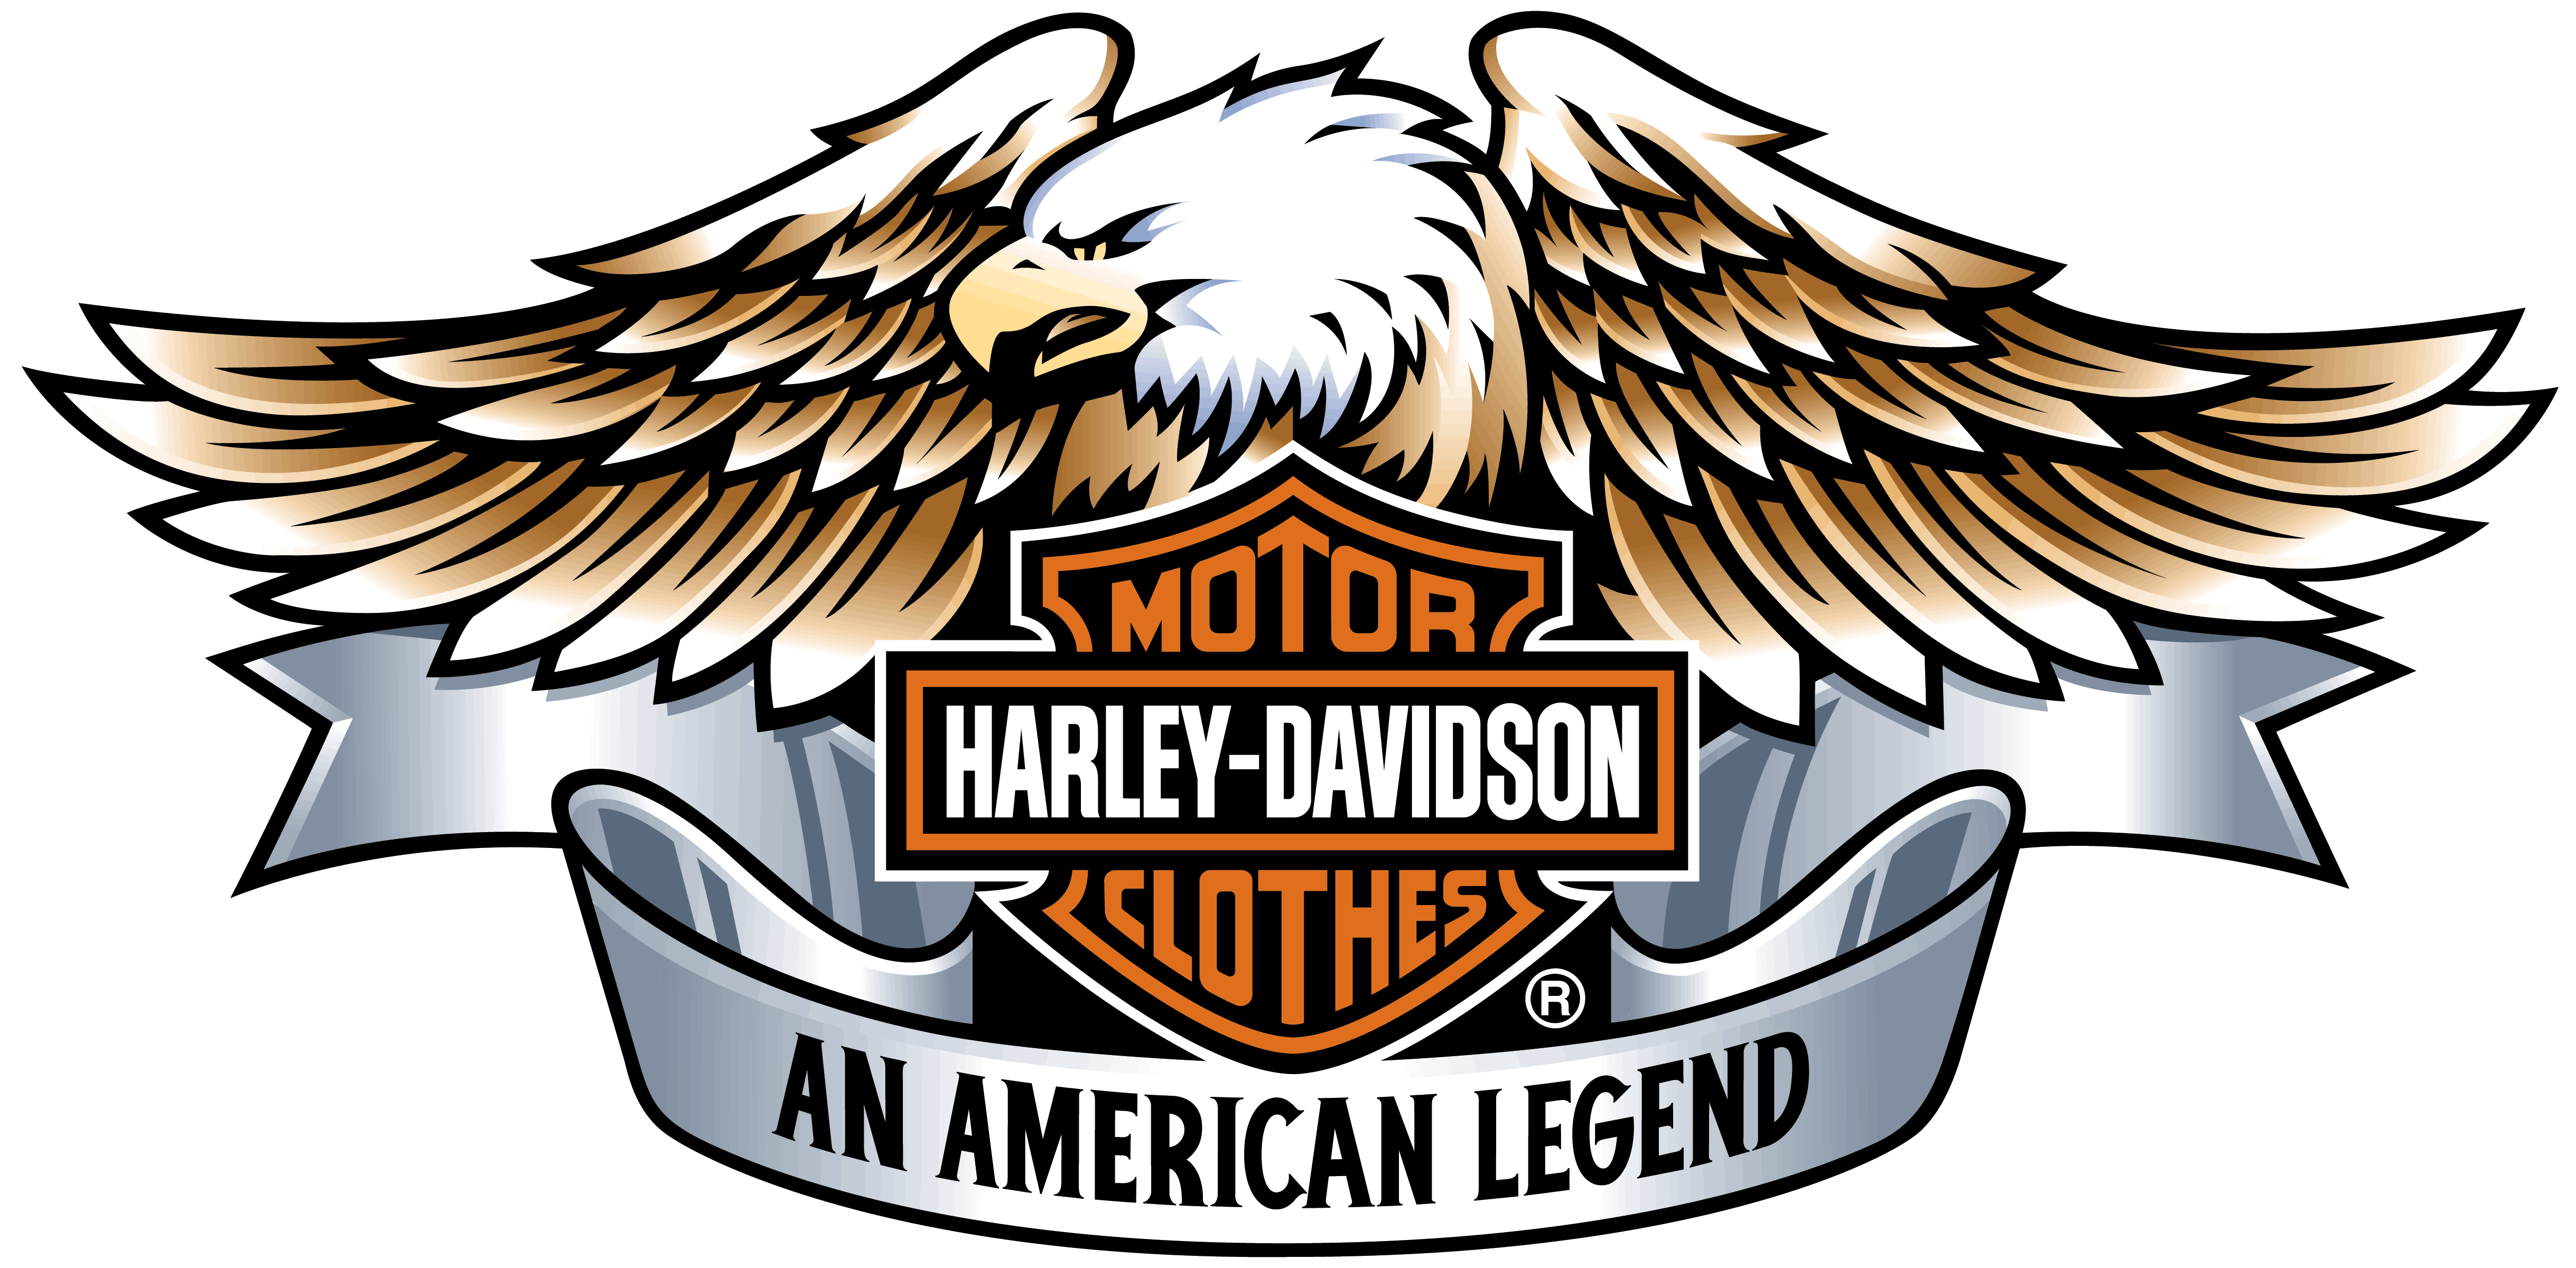 Harley davidson logo clipart graphic library Harley Davidson Logo Clip Art - Cliparts.co graphic library